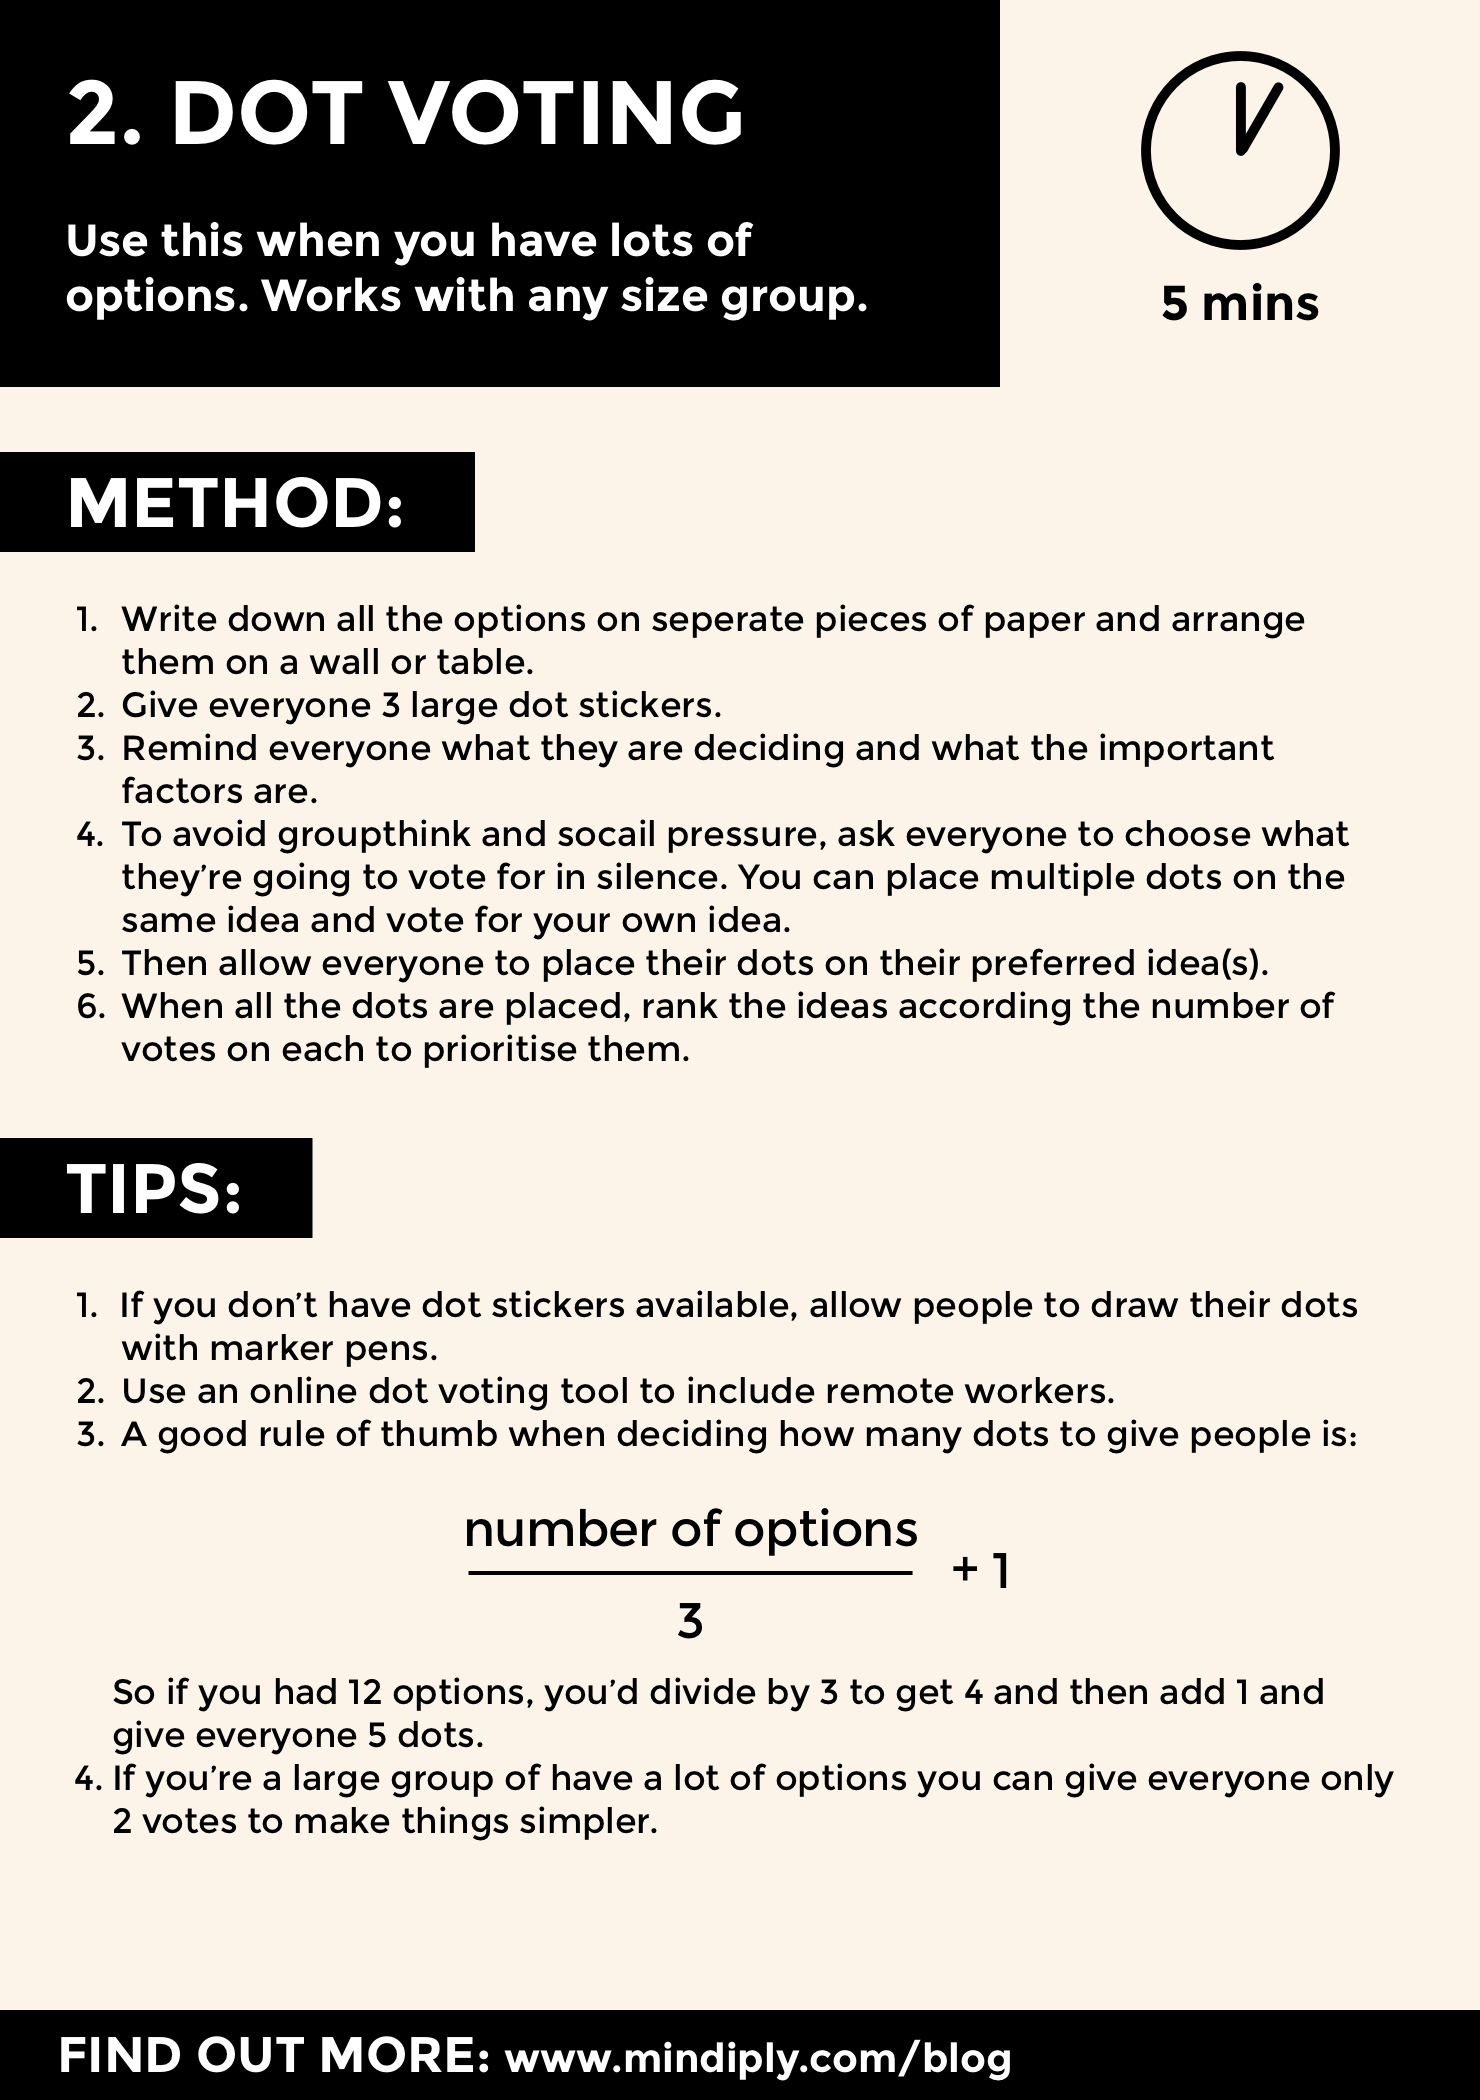 Dot voting method reference card - page 1